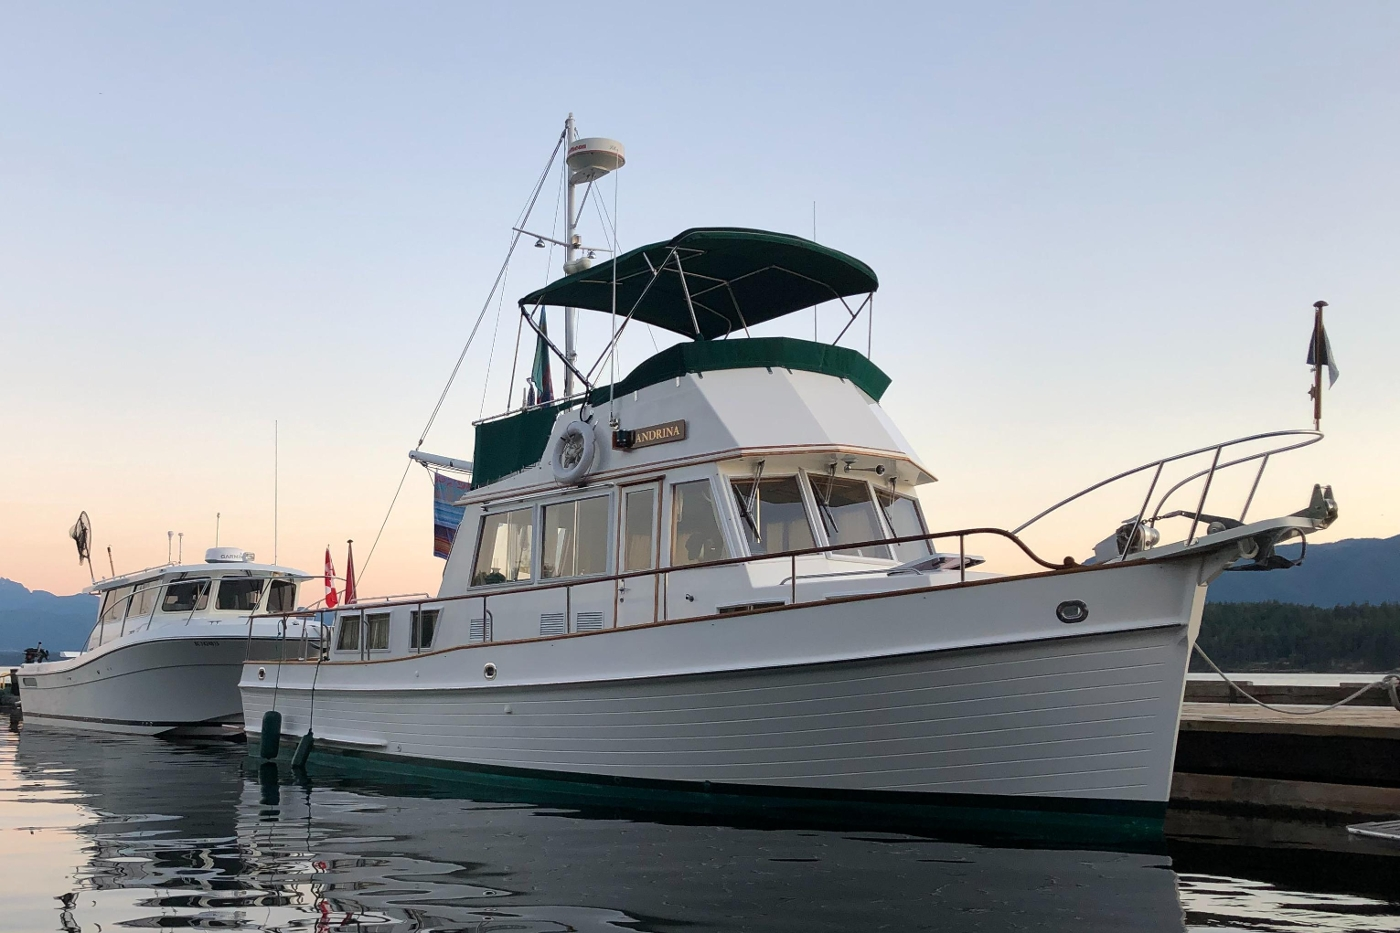 1995 Grand Banks 36 Classic, Sunset on the Dock